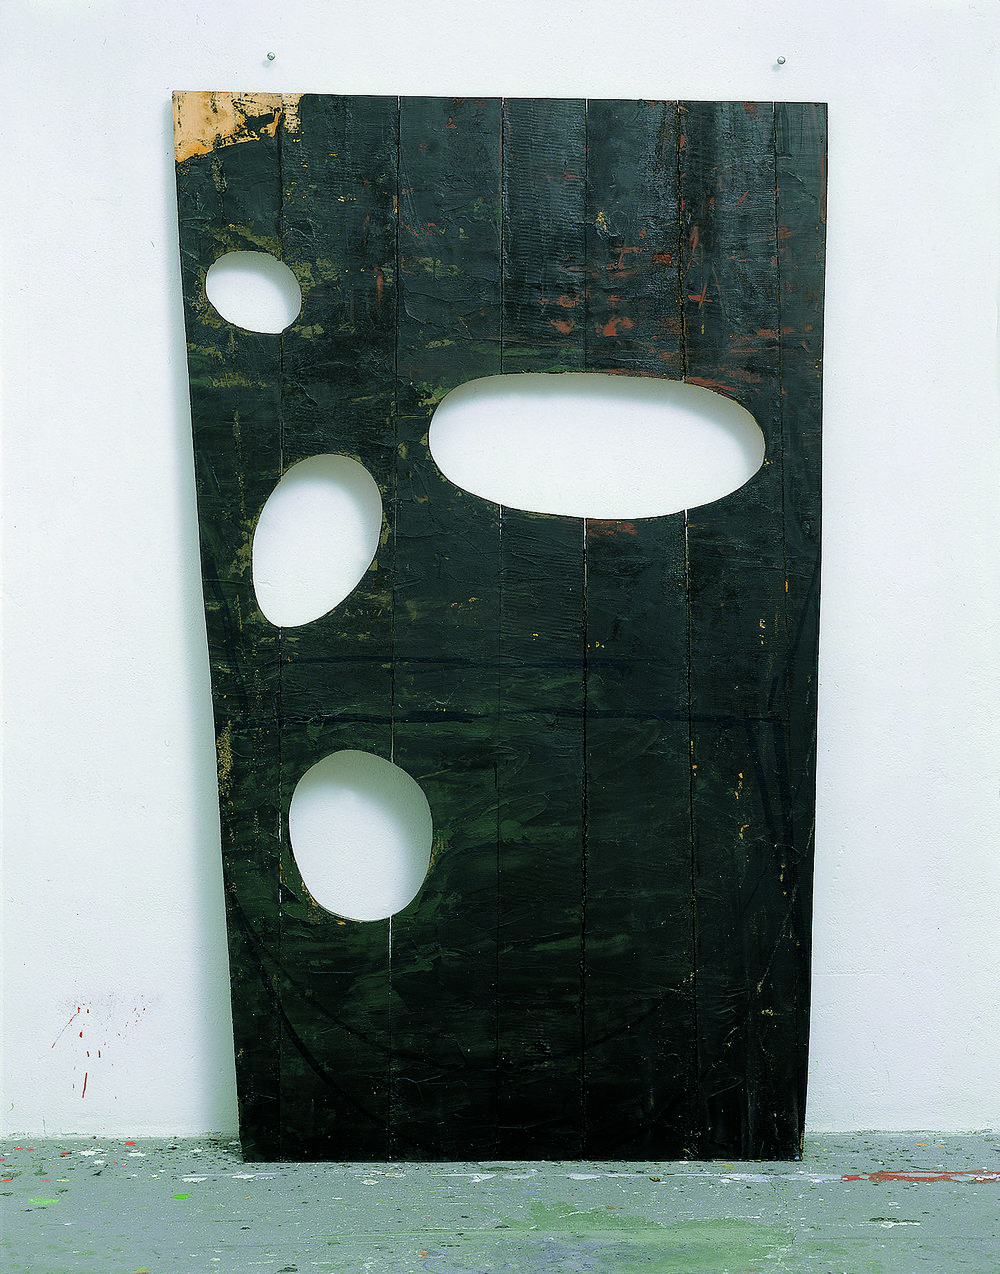 Untitled, 1991, Oil on wood, 80.70h x 50w in (205h x 127w cm)